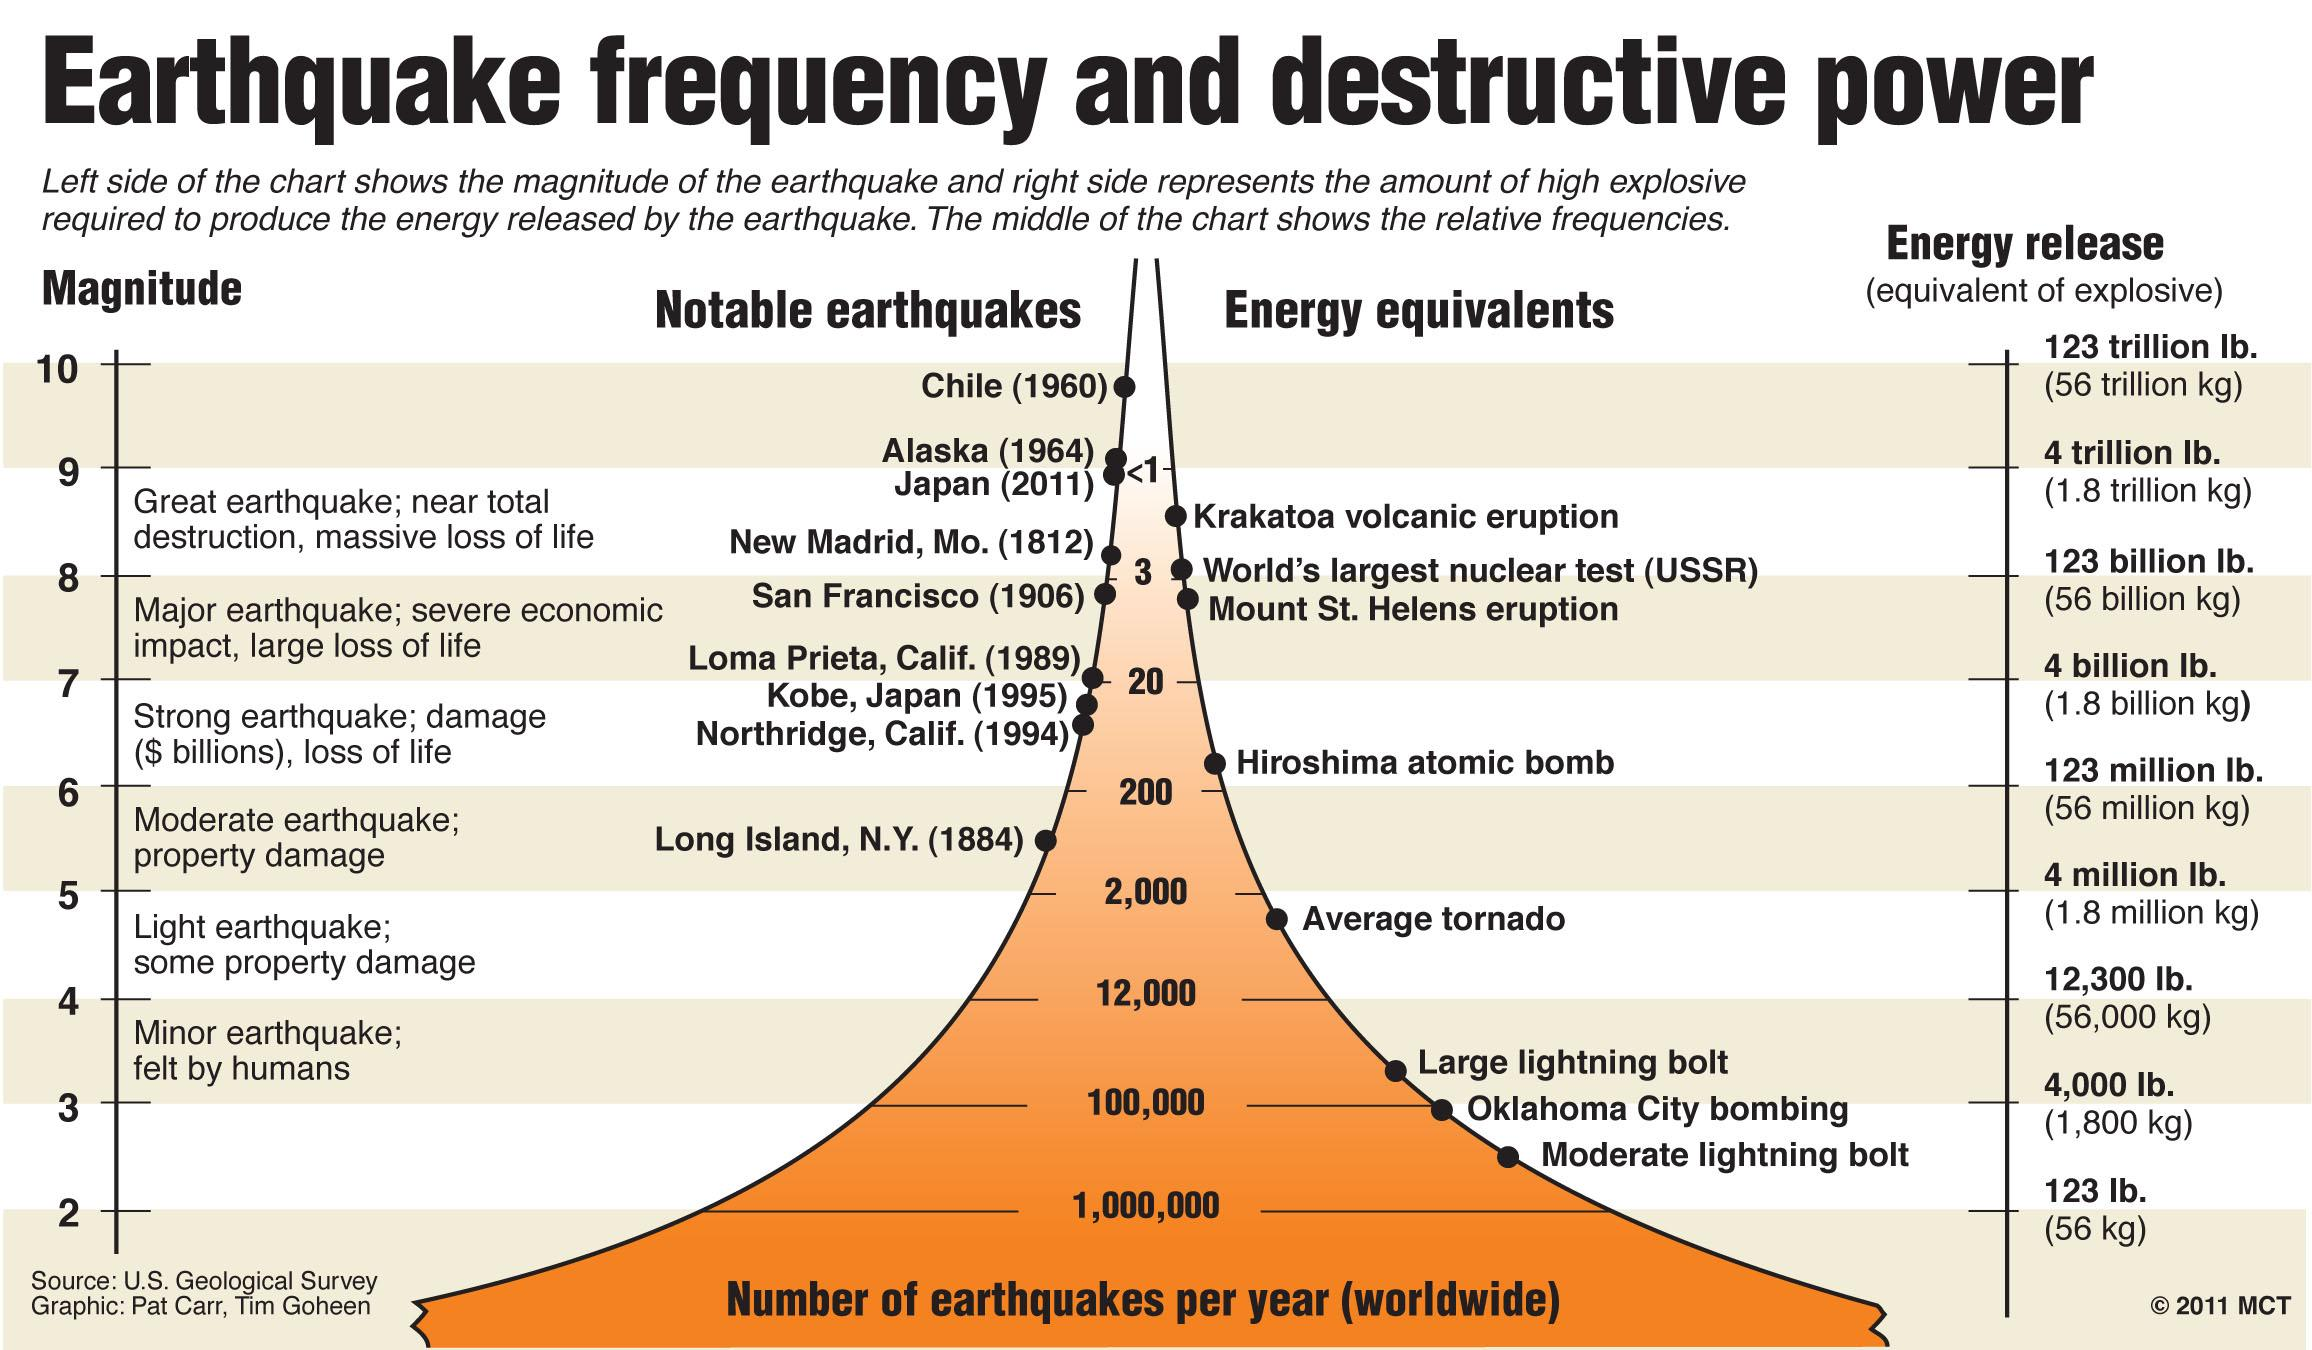 Graphic compares earthquake frequency, size, and destructive force